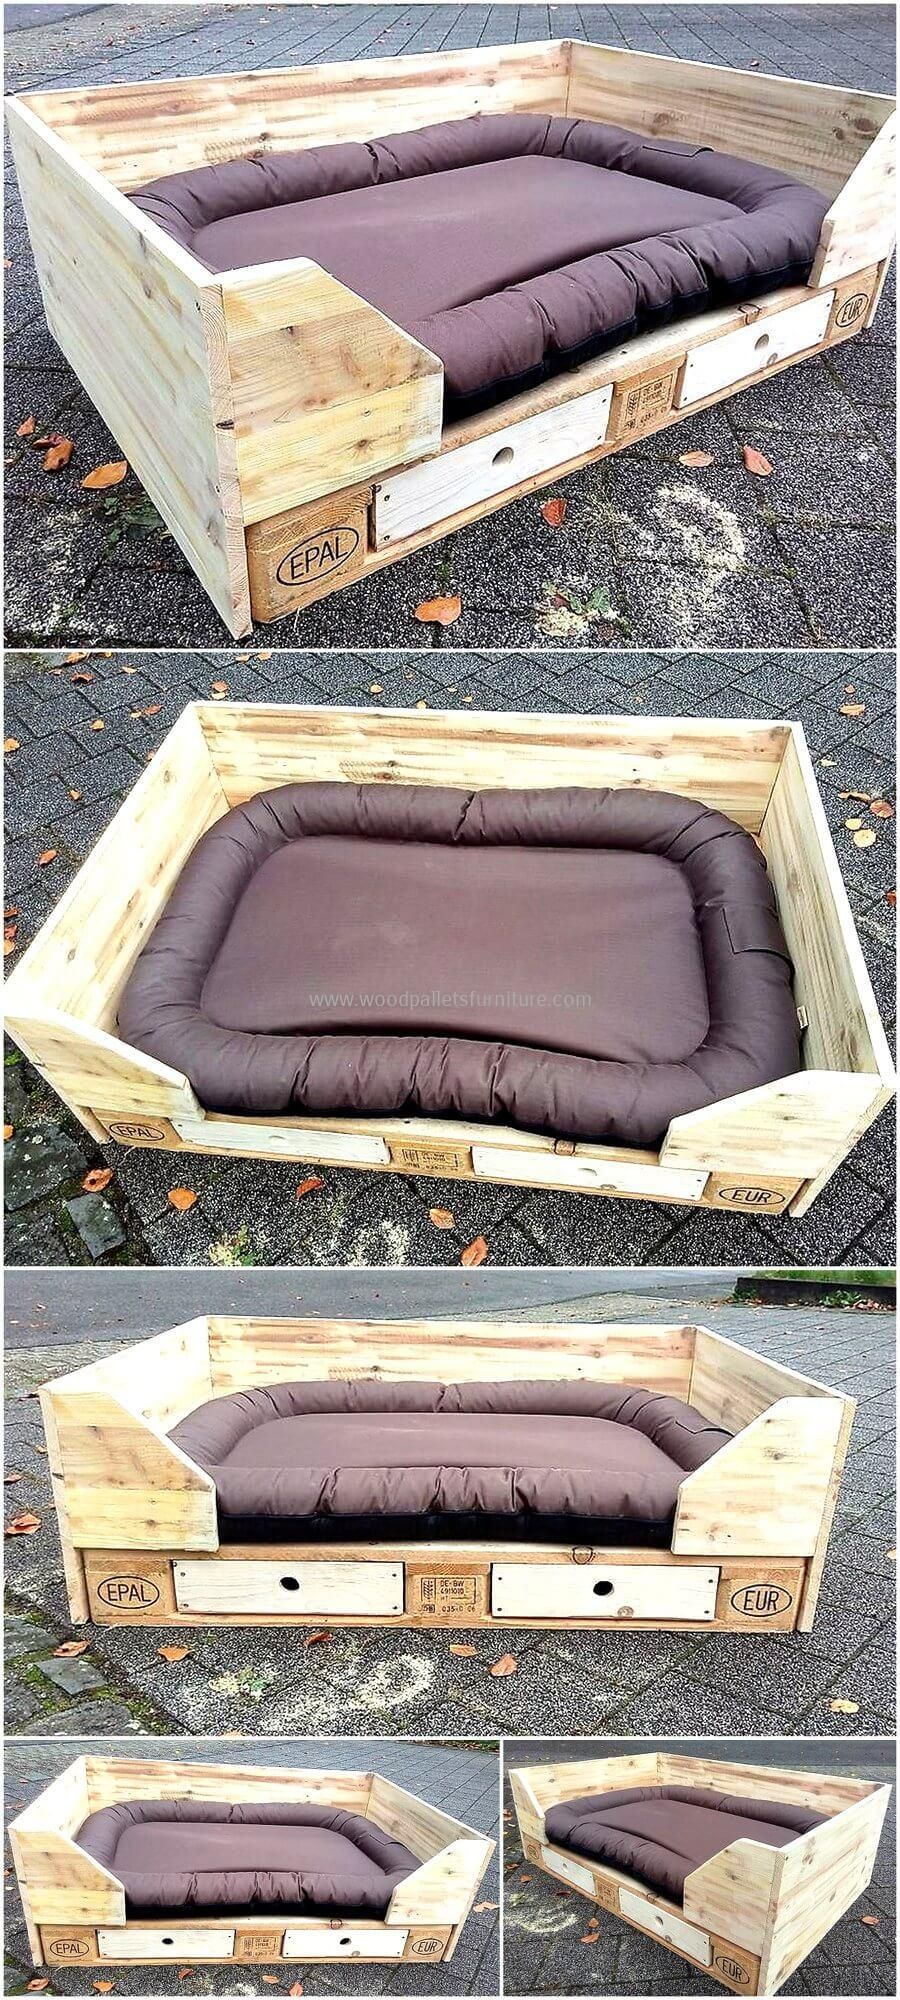 Cute Dog Bed Out of Recycled Pallets   Wood Pallet ...